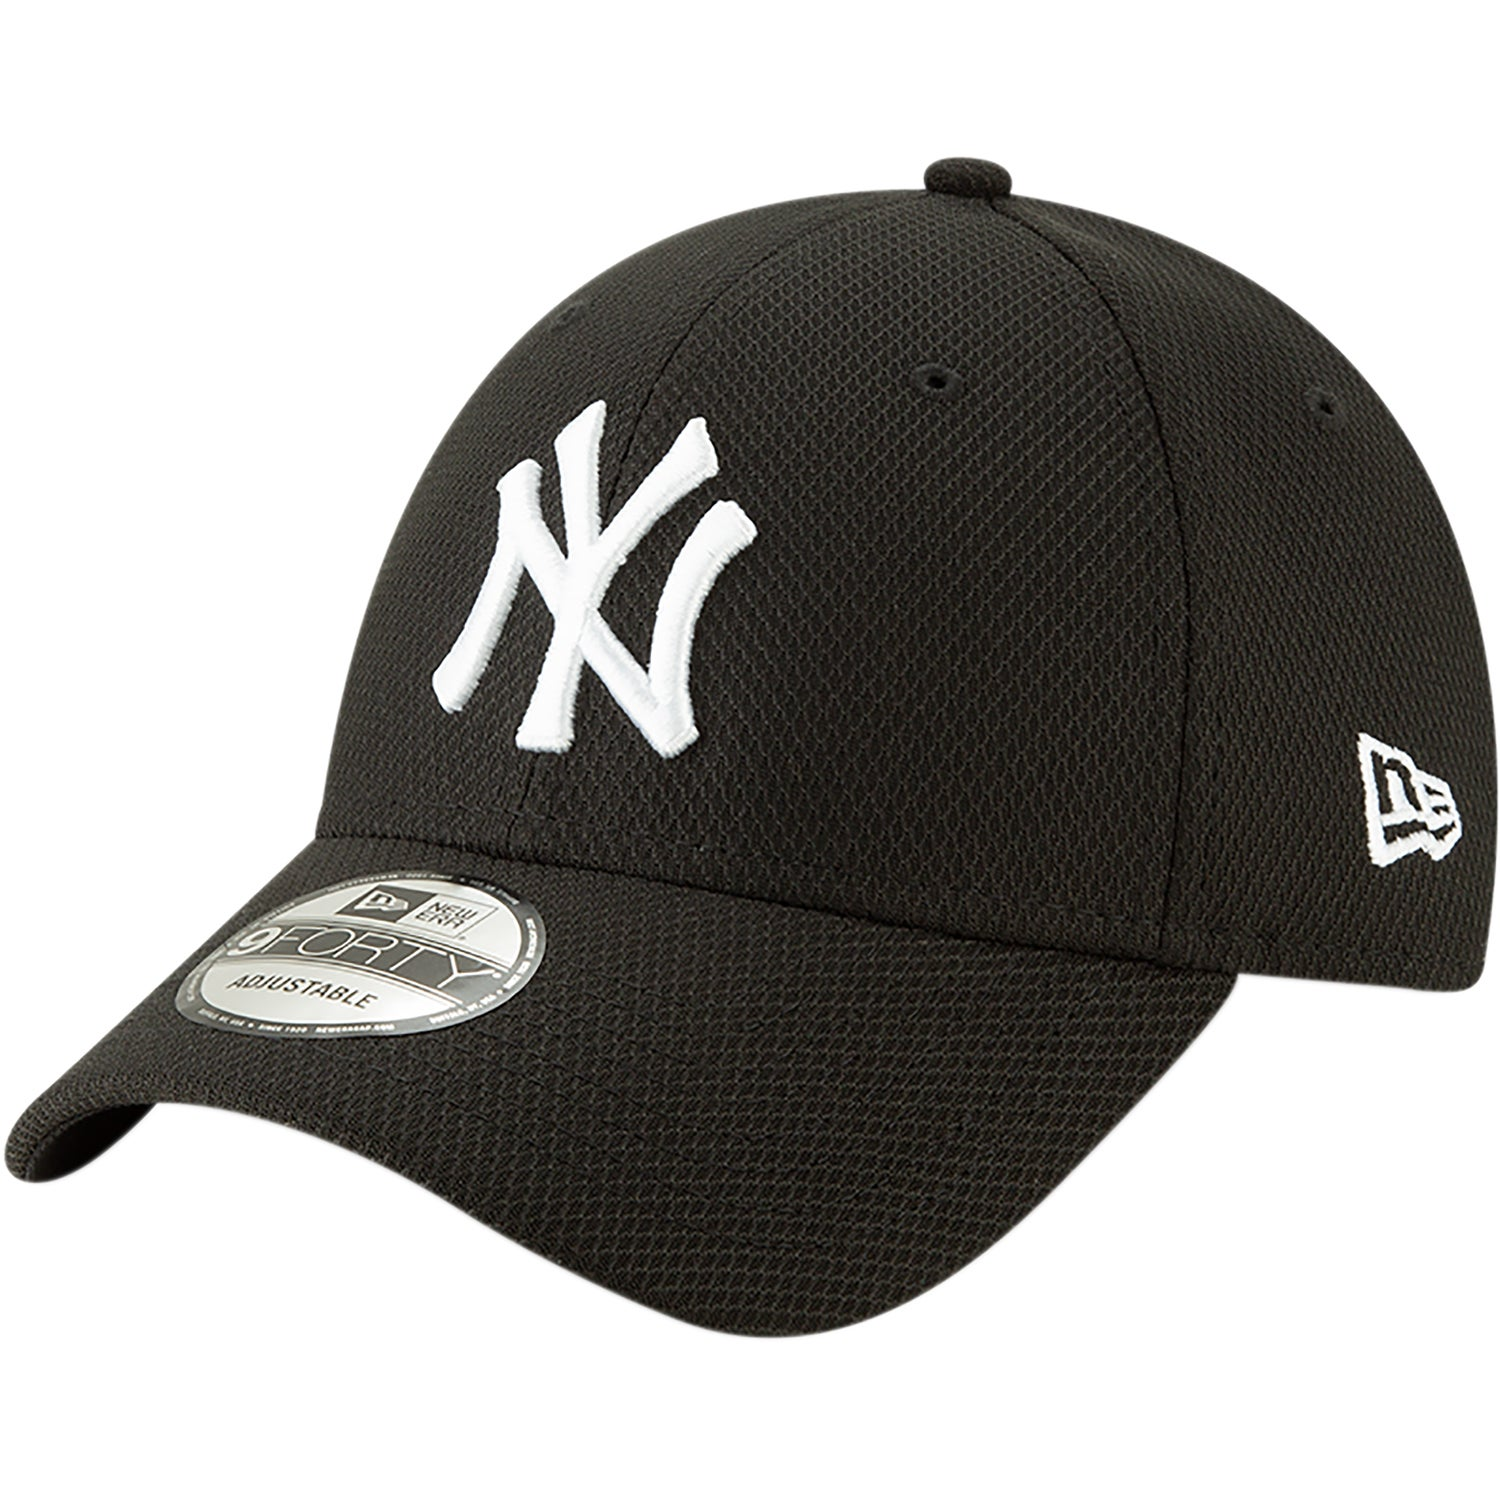 834886d0cd2 New Era Diamond 9forty Unisex Headwear Cap - York Yankees One Size ...